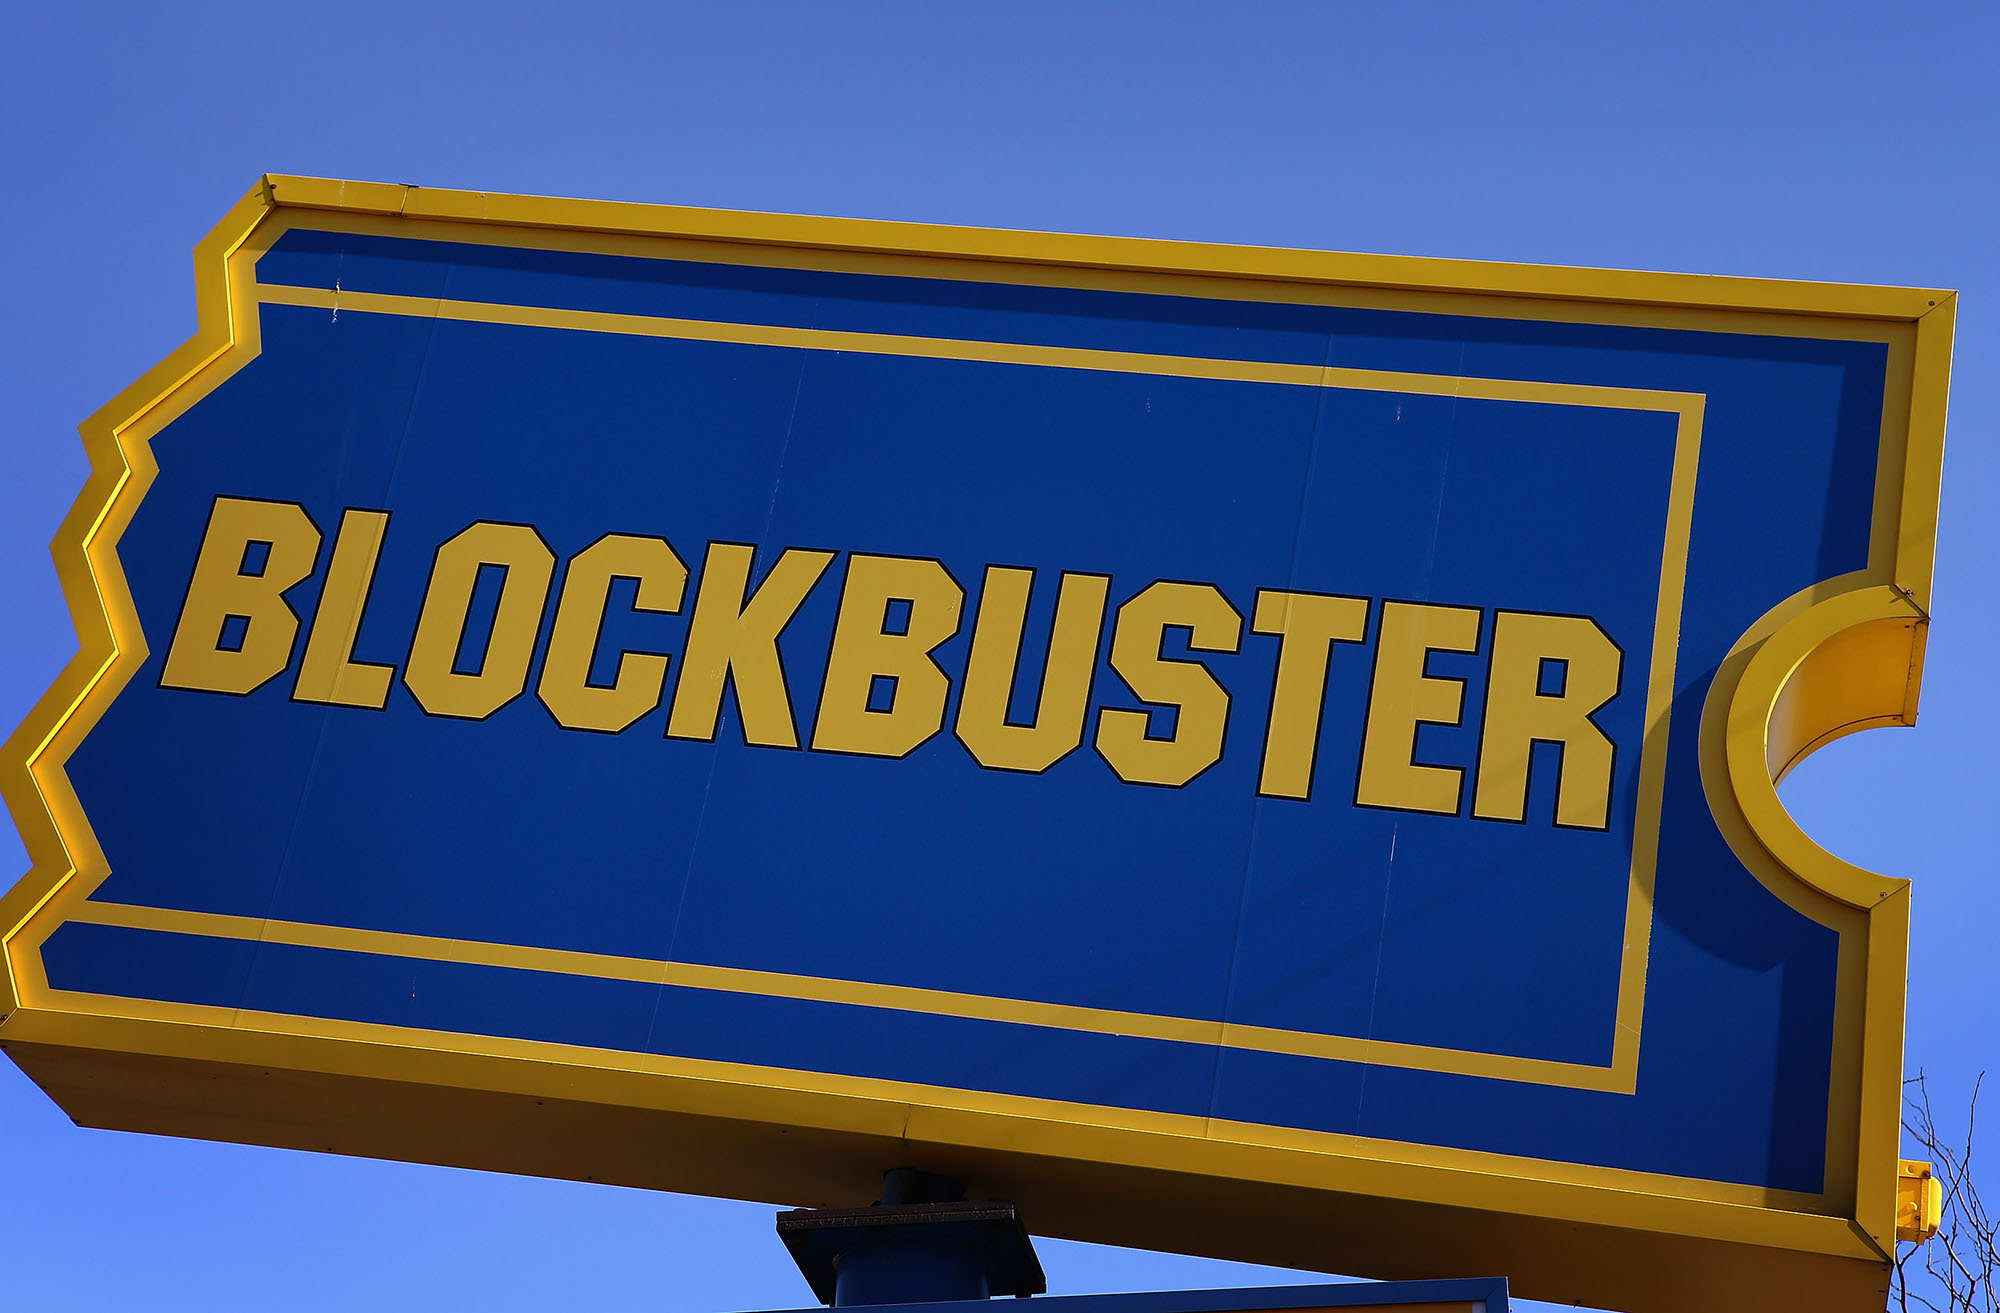 A sign marks the location of a Blockbuster video store on January 22, 2013 in Chicago, Illinois. Dish Network Corp., which owns the video rental chain, says it plans to close about 300 Blockbuster stores across the country, eliminating about 3,000 jobs.   (Photo by Scott Olson/Getty Images)